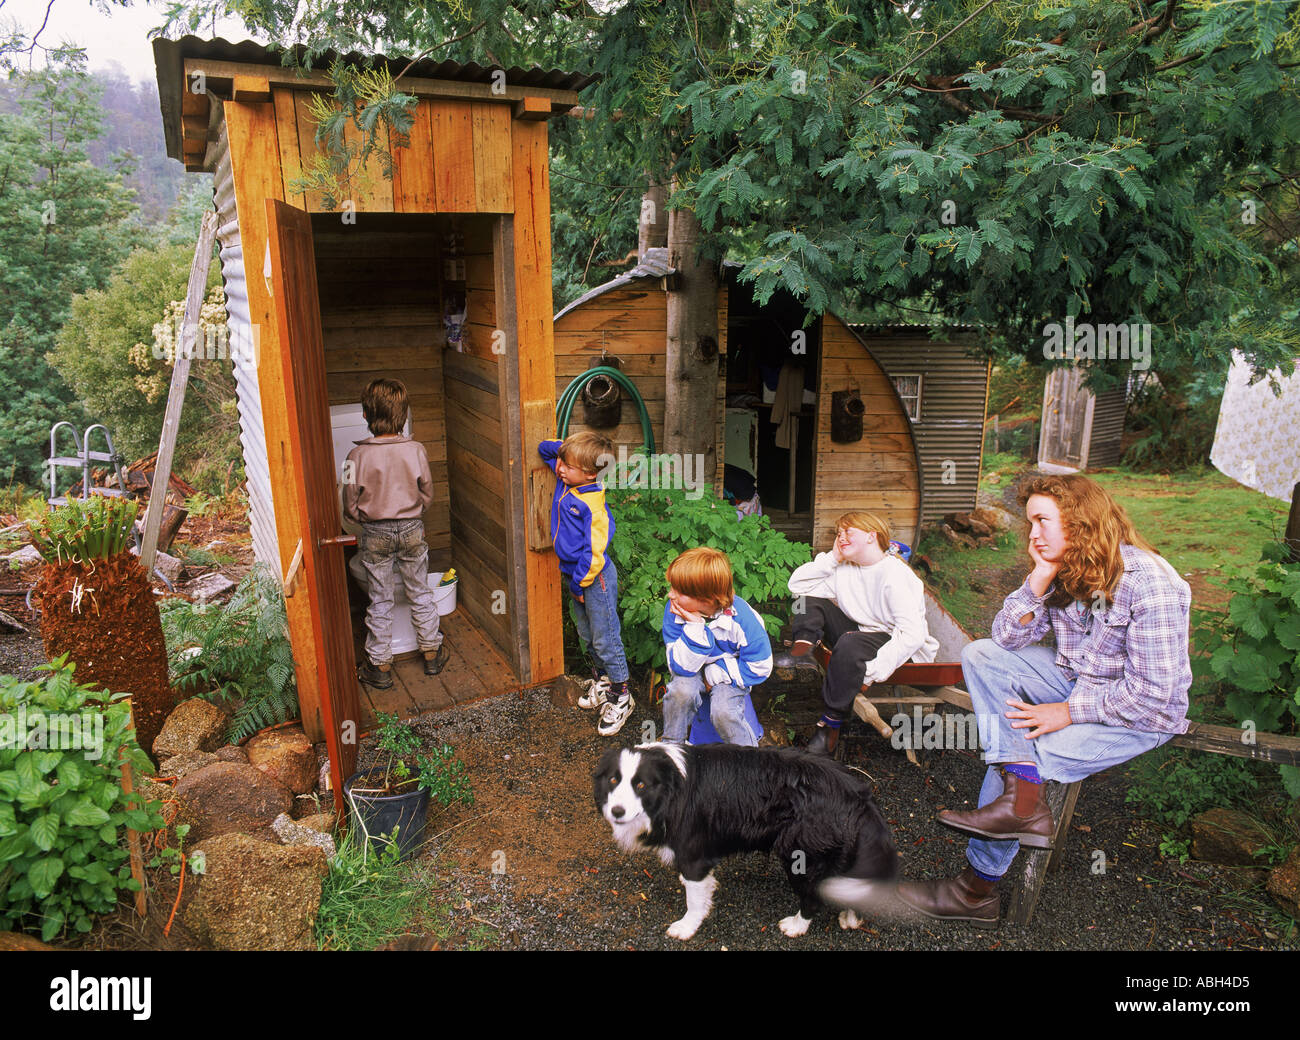 kids and mom waiting to use family dunny or outhouse in country